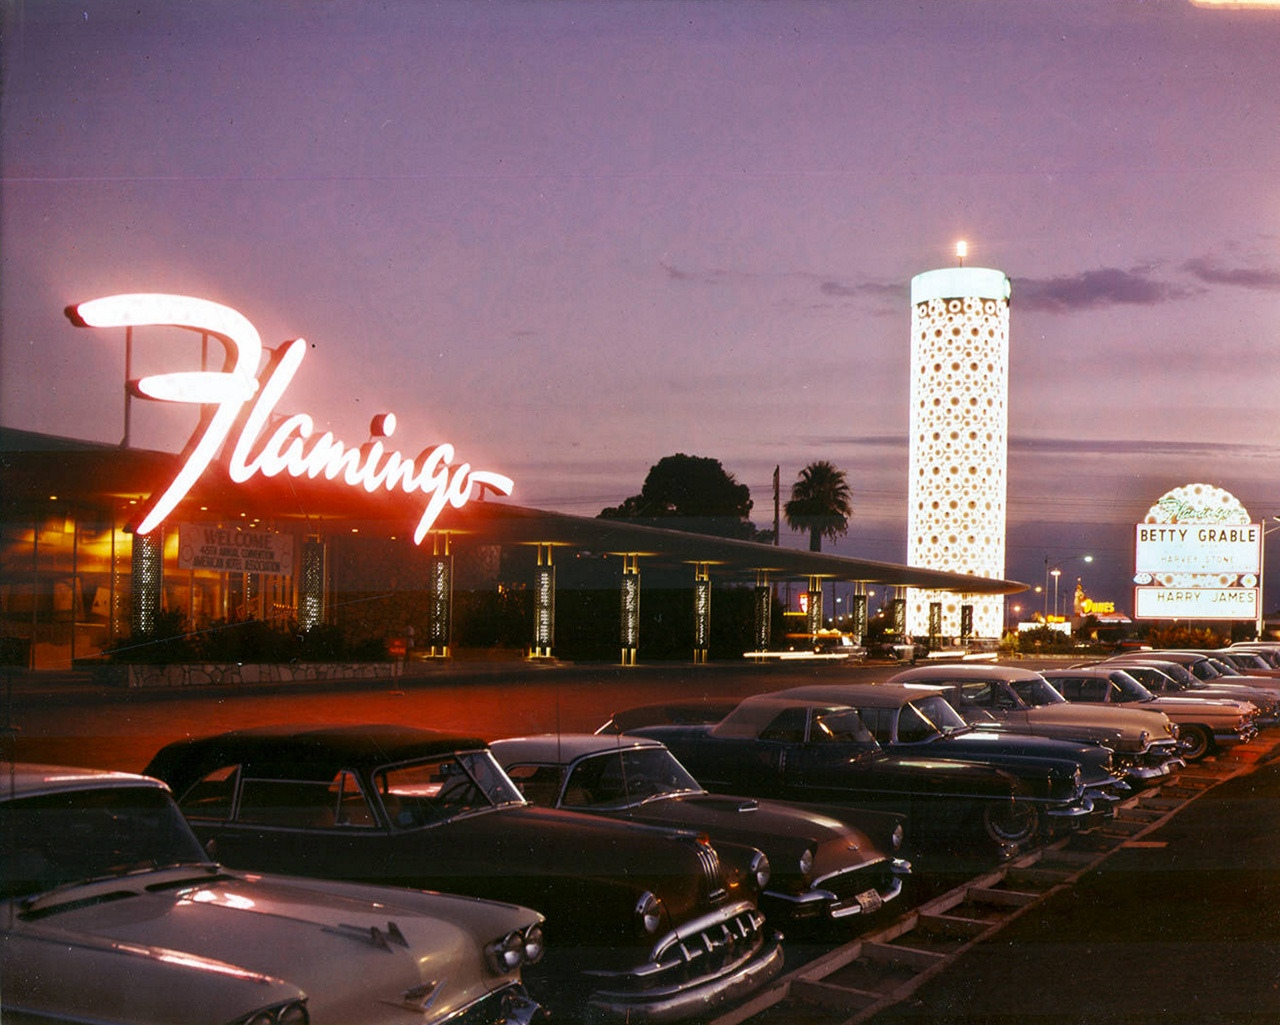 1959, September. Flamingo. Las Vegas